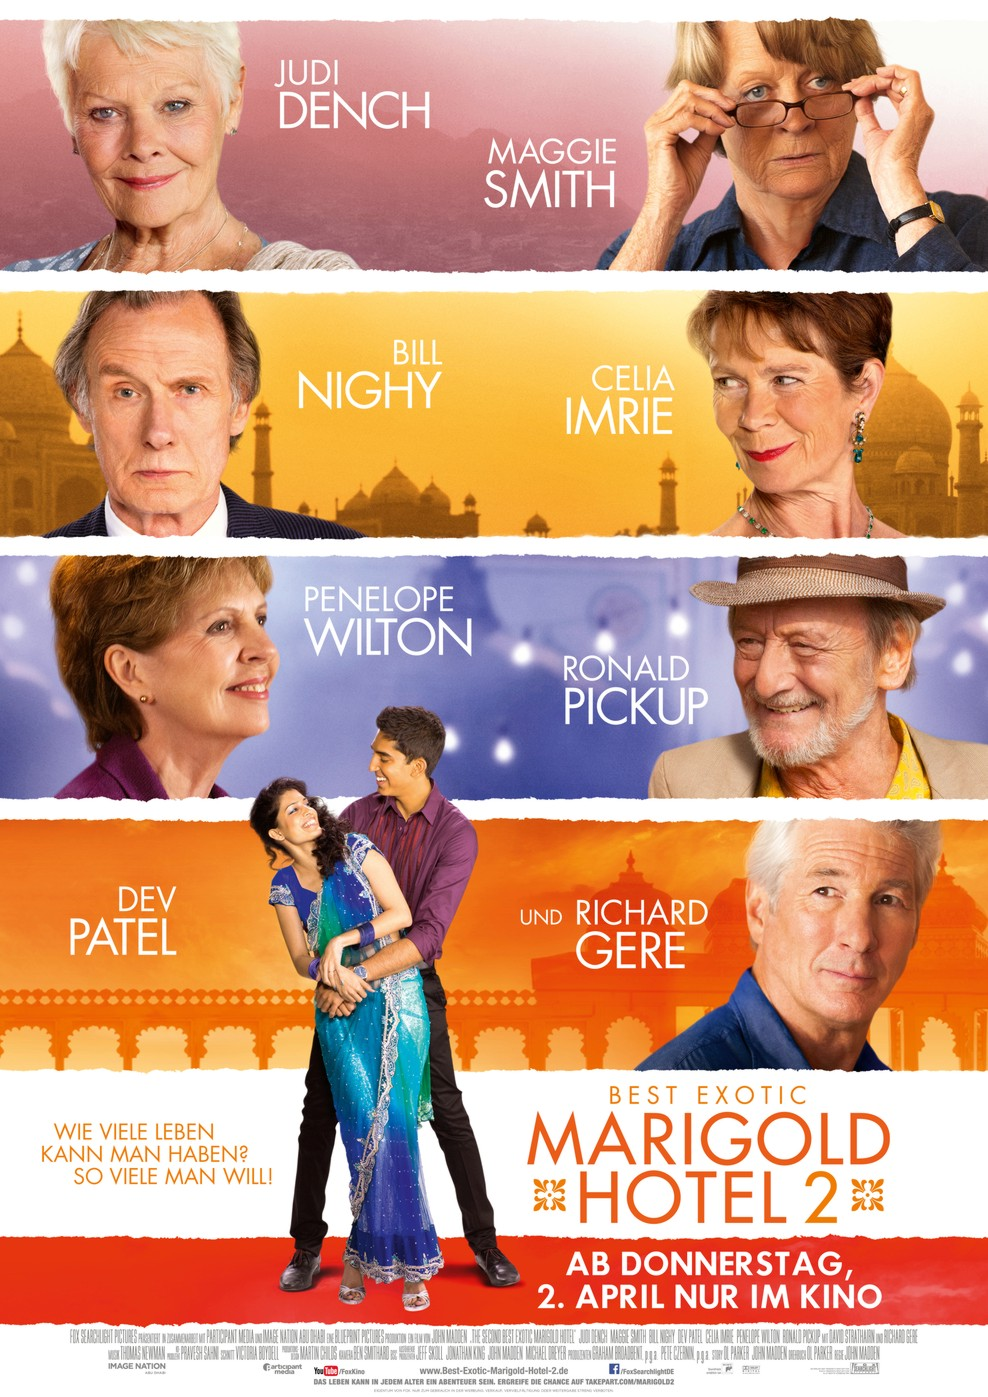 Best Exotic Marigold Hotel 2 (Poster)